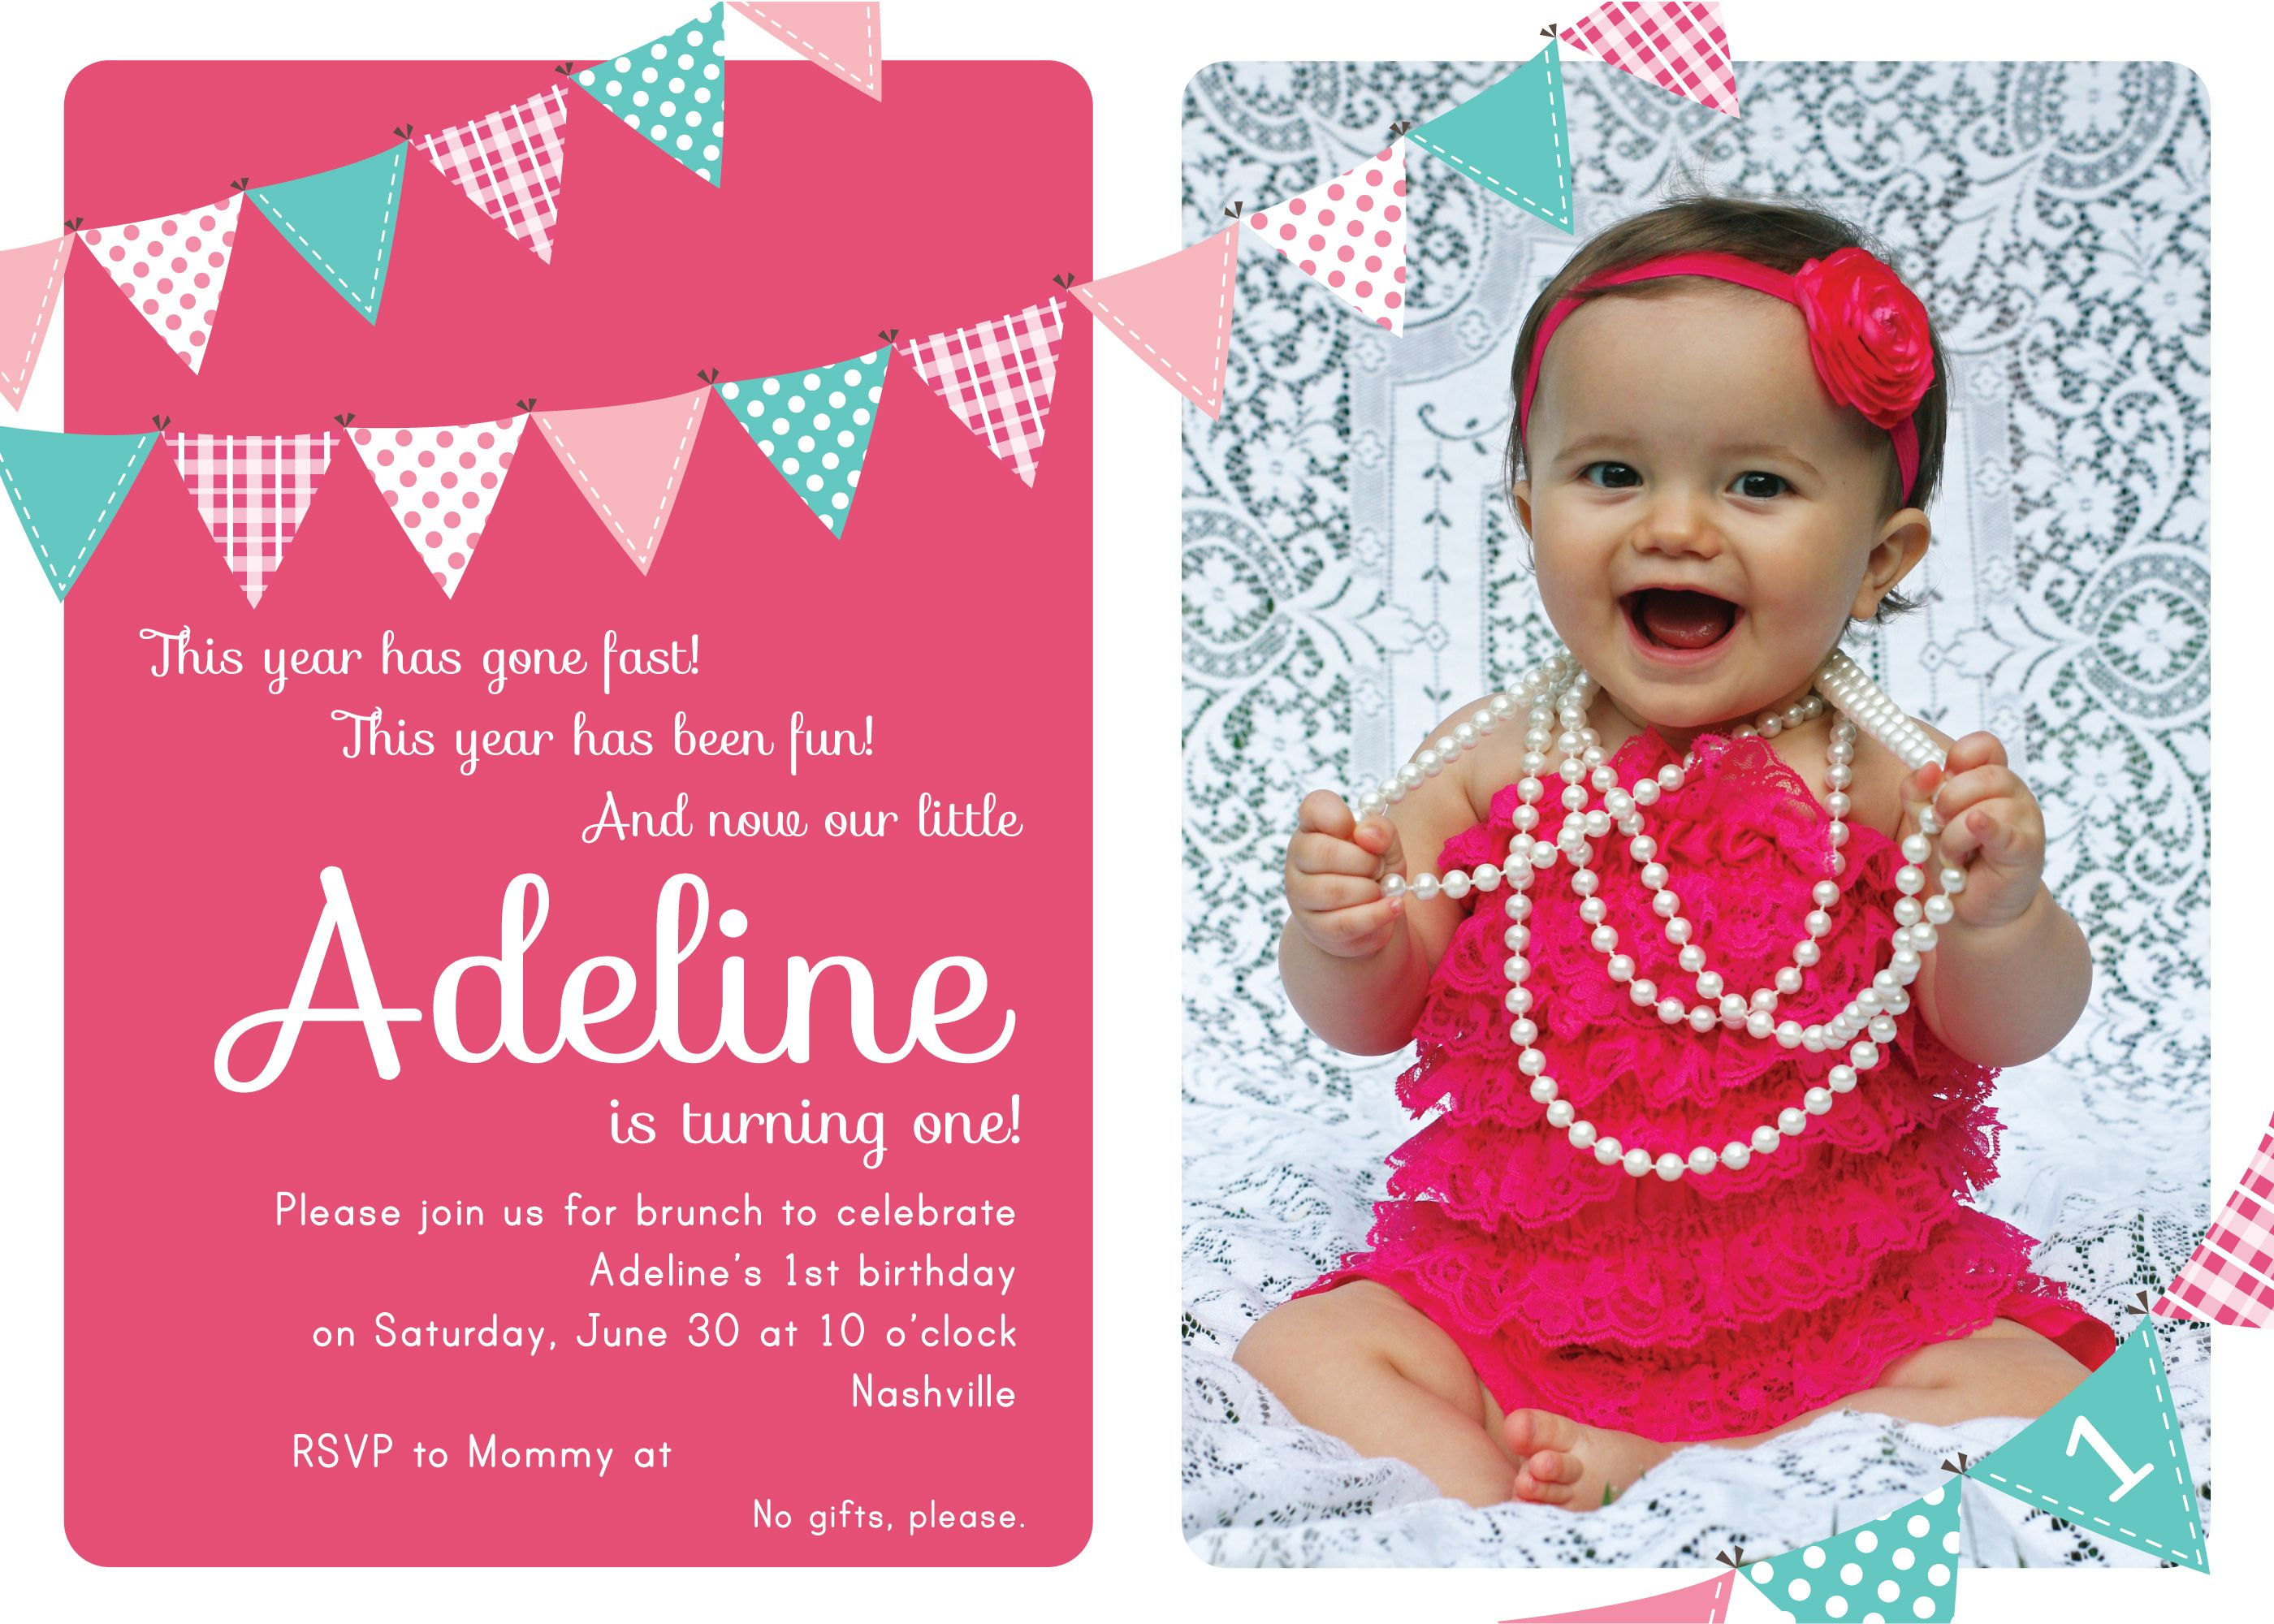 1st birthday girl themes   for her first birthday party adeline wore ...